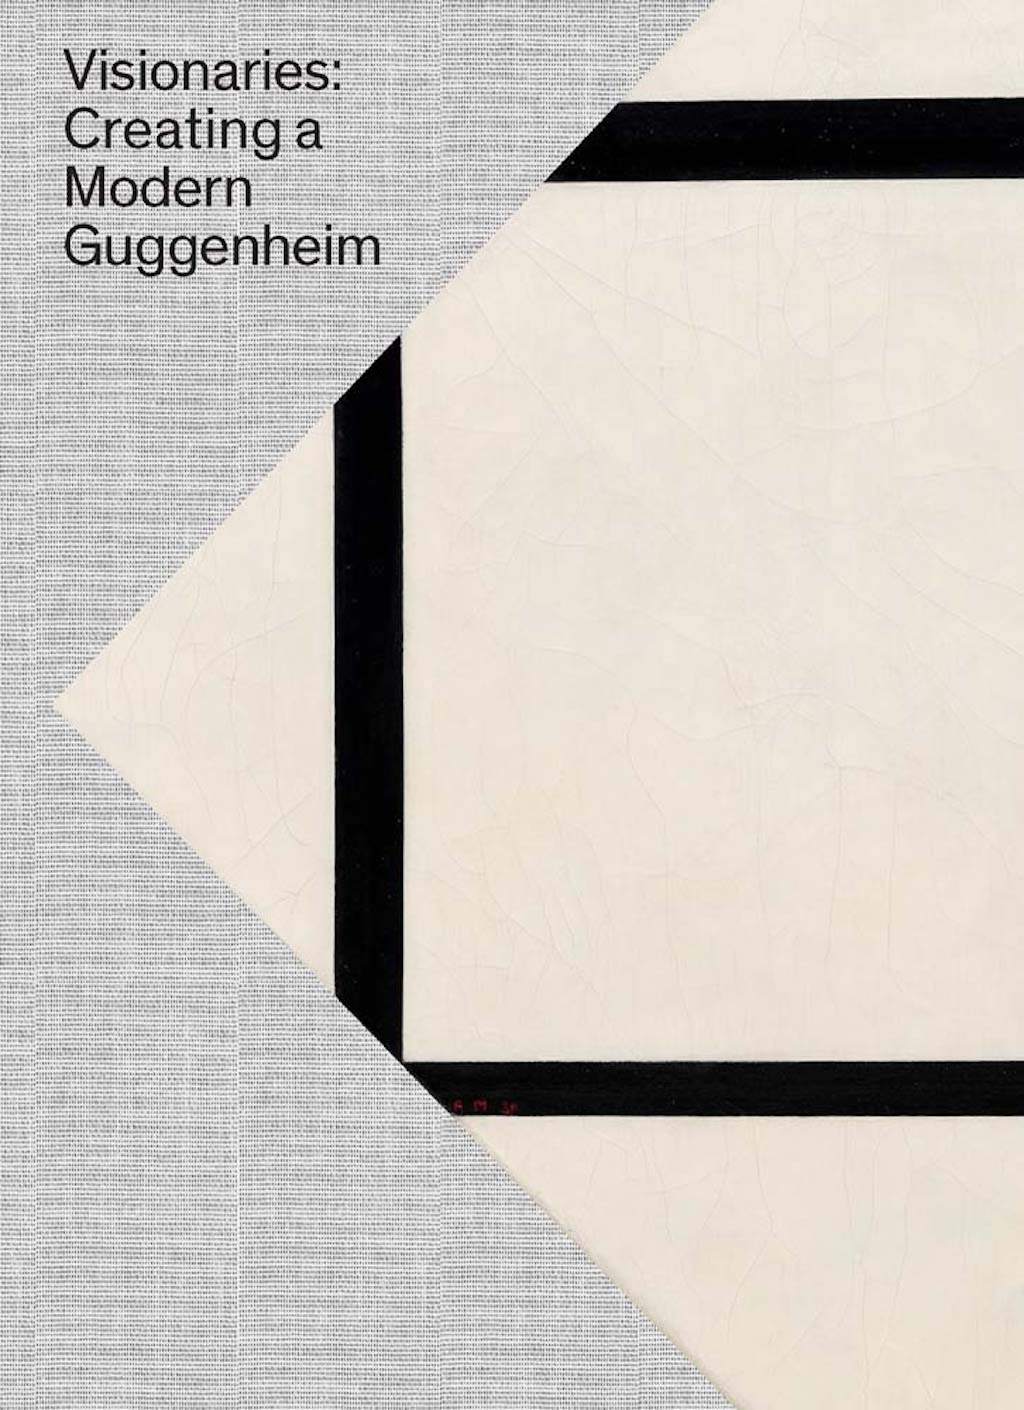 Visionaries: Creating A Modern Guggenheim edited by Megan Fontanella   Courtesy of Guggenheim Museum Publications